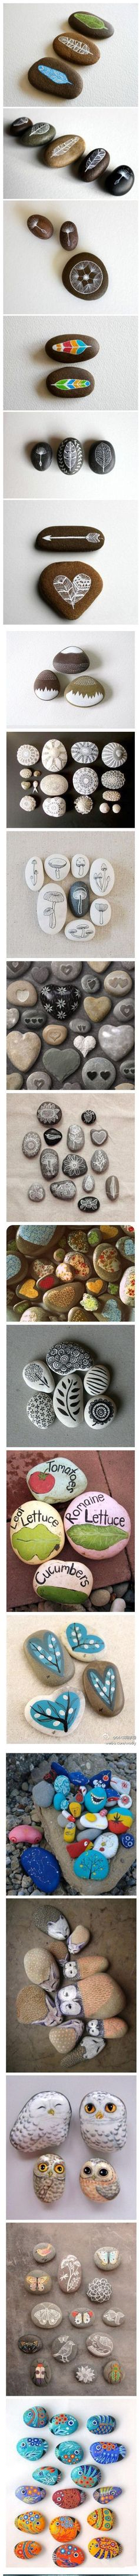 fun with stones and rocks: